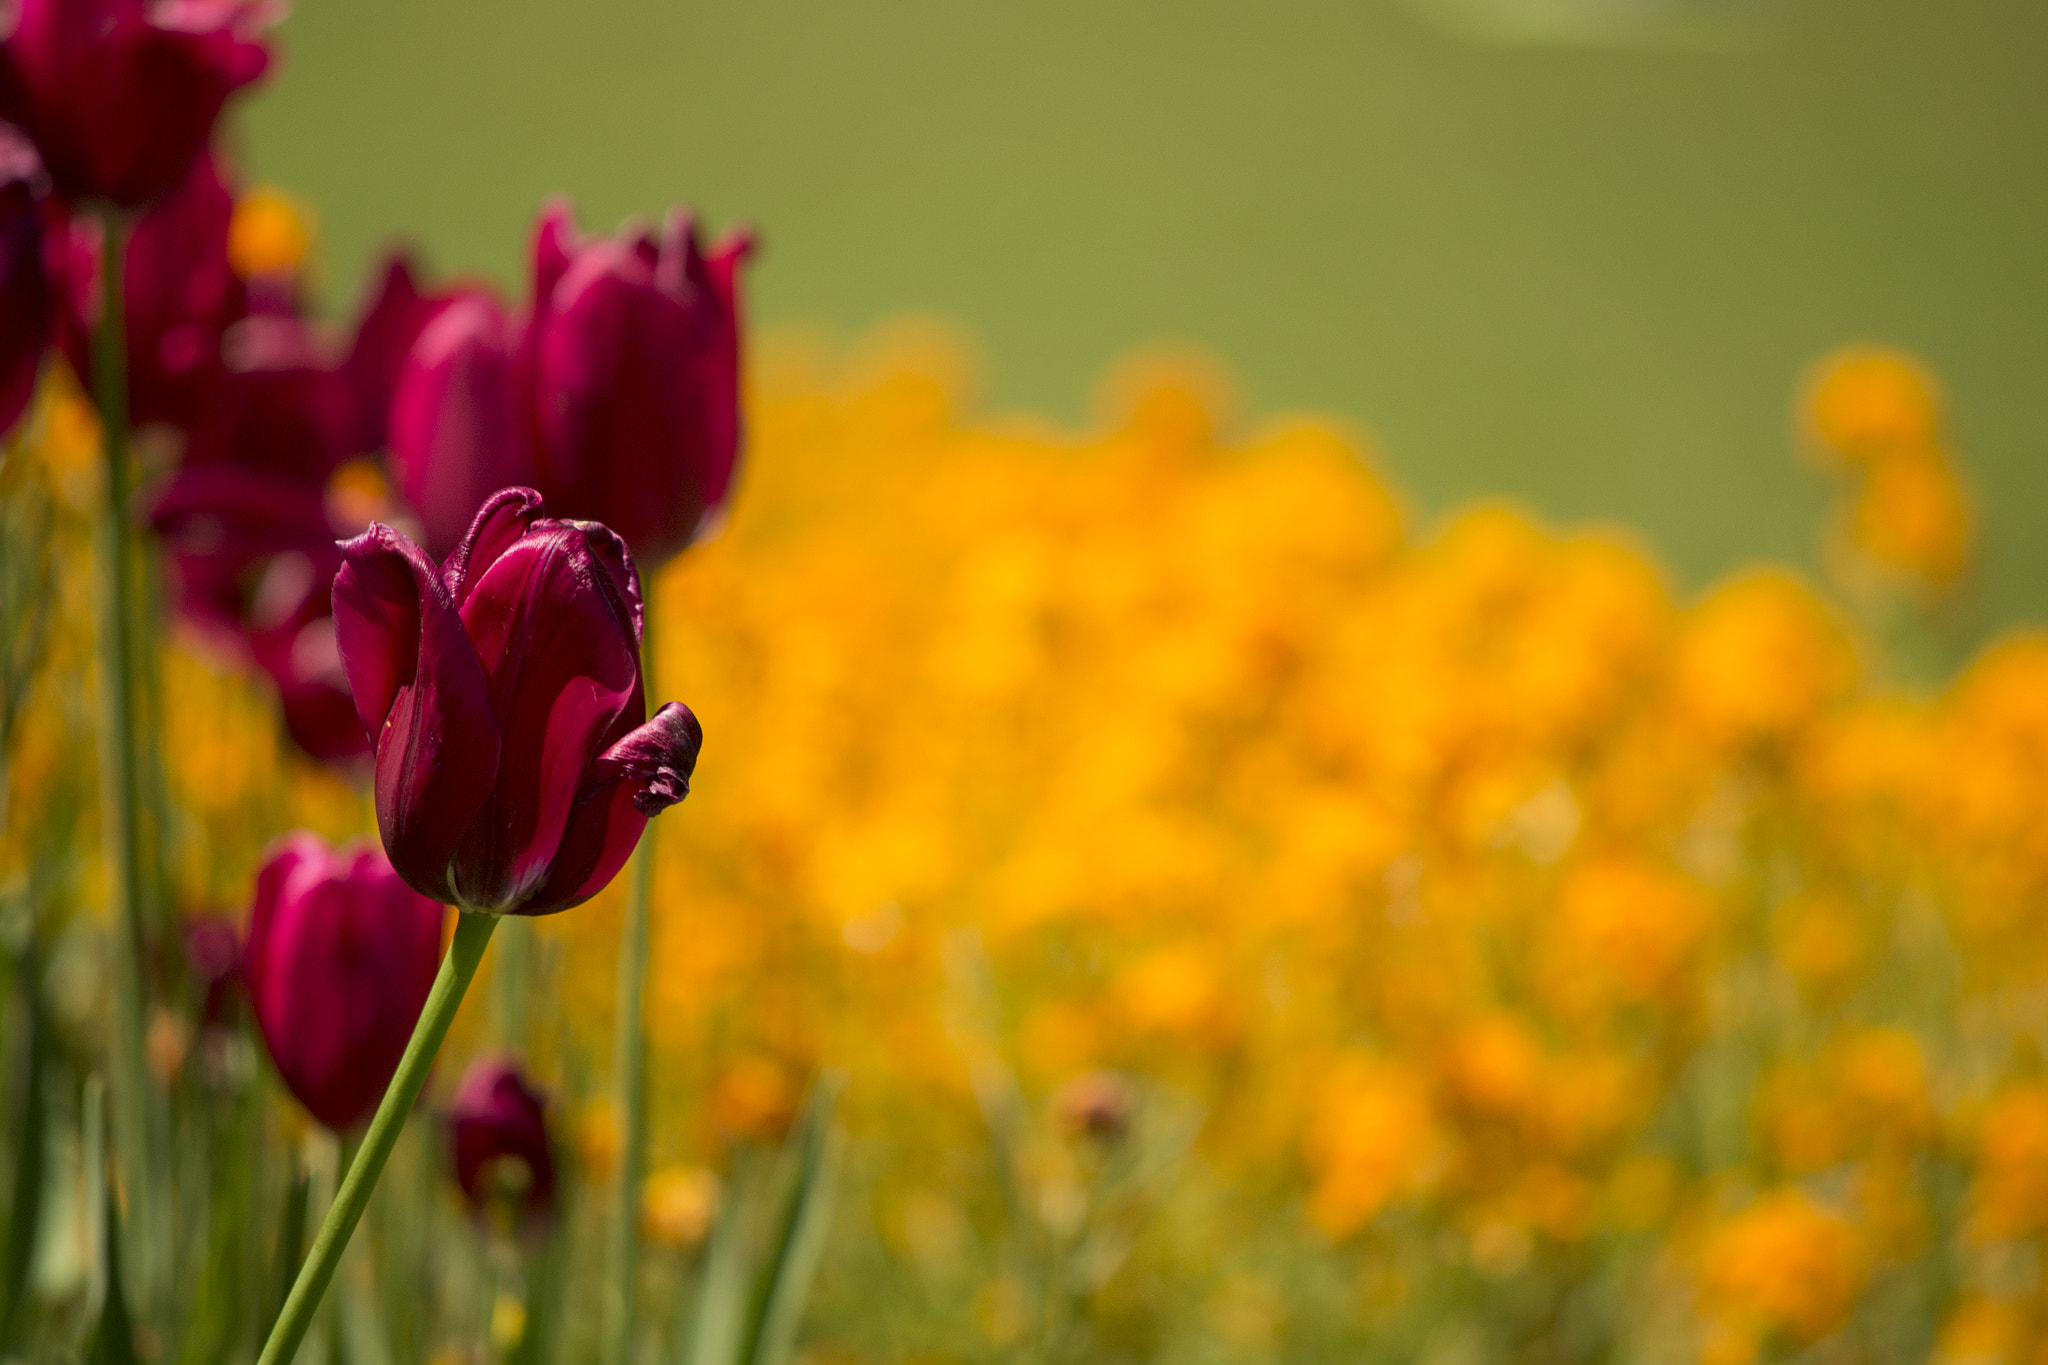 Photograph Tulip by  Mendes on 500px